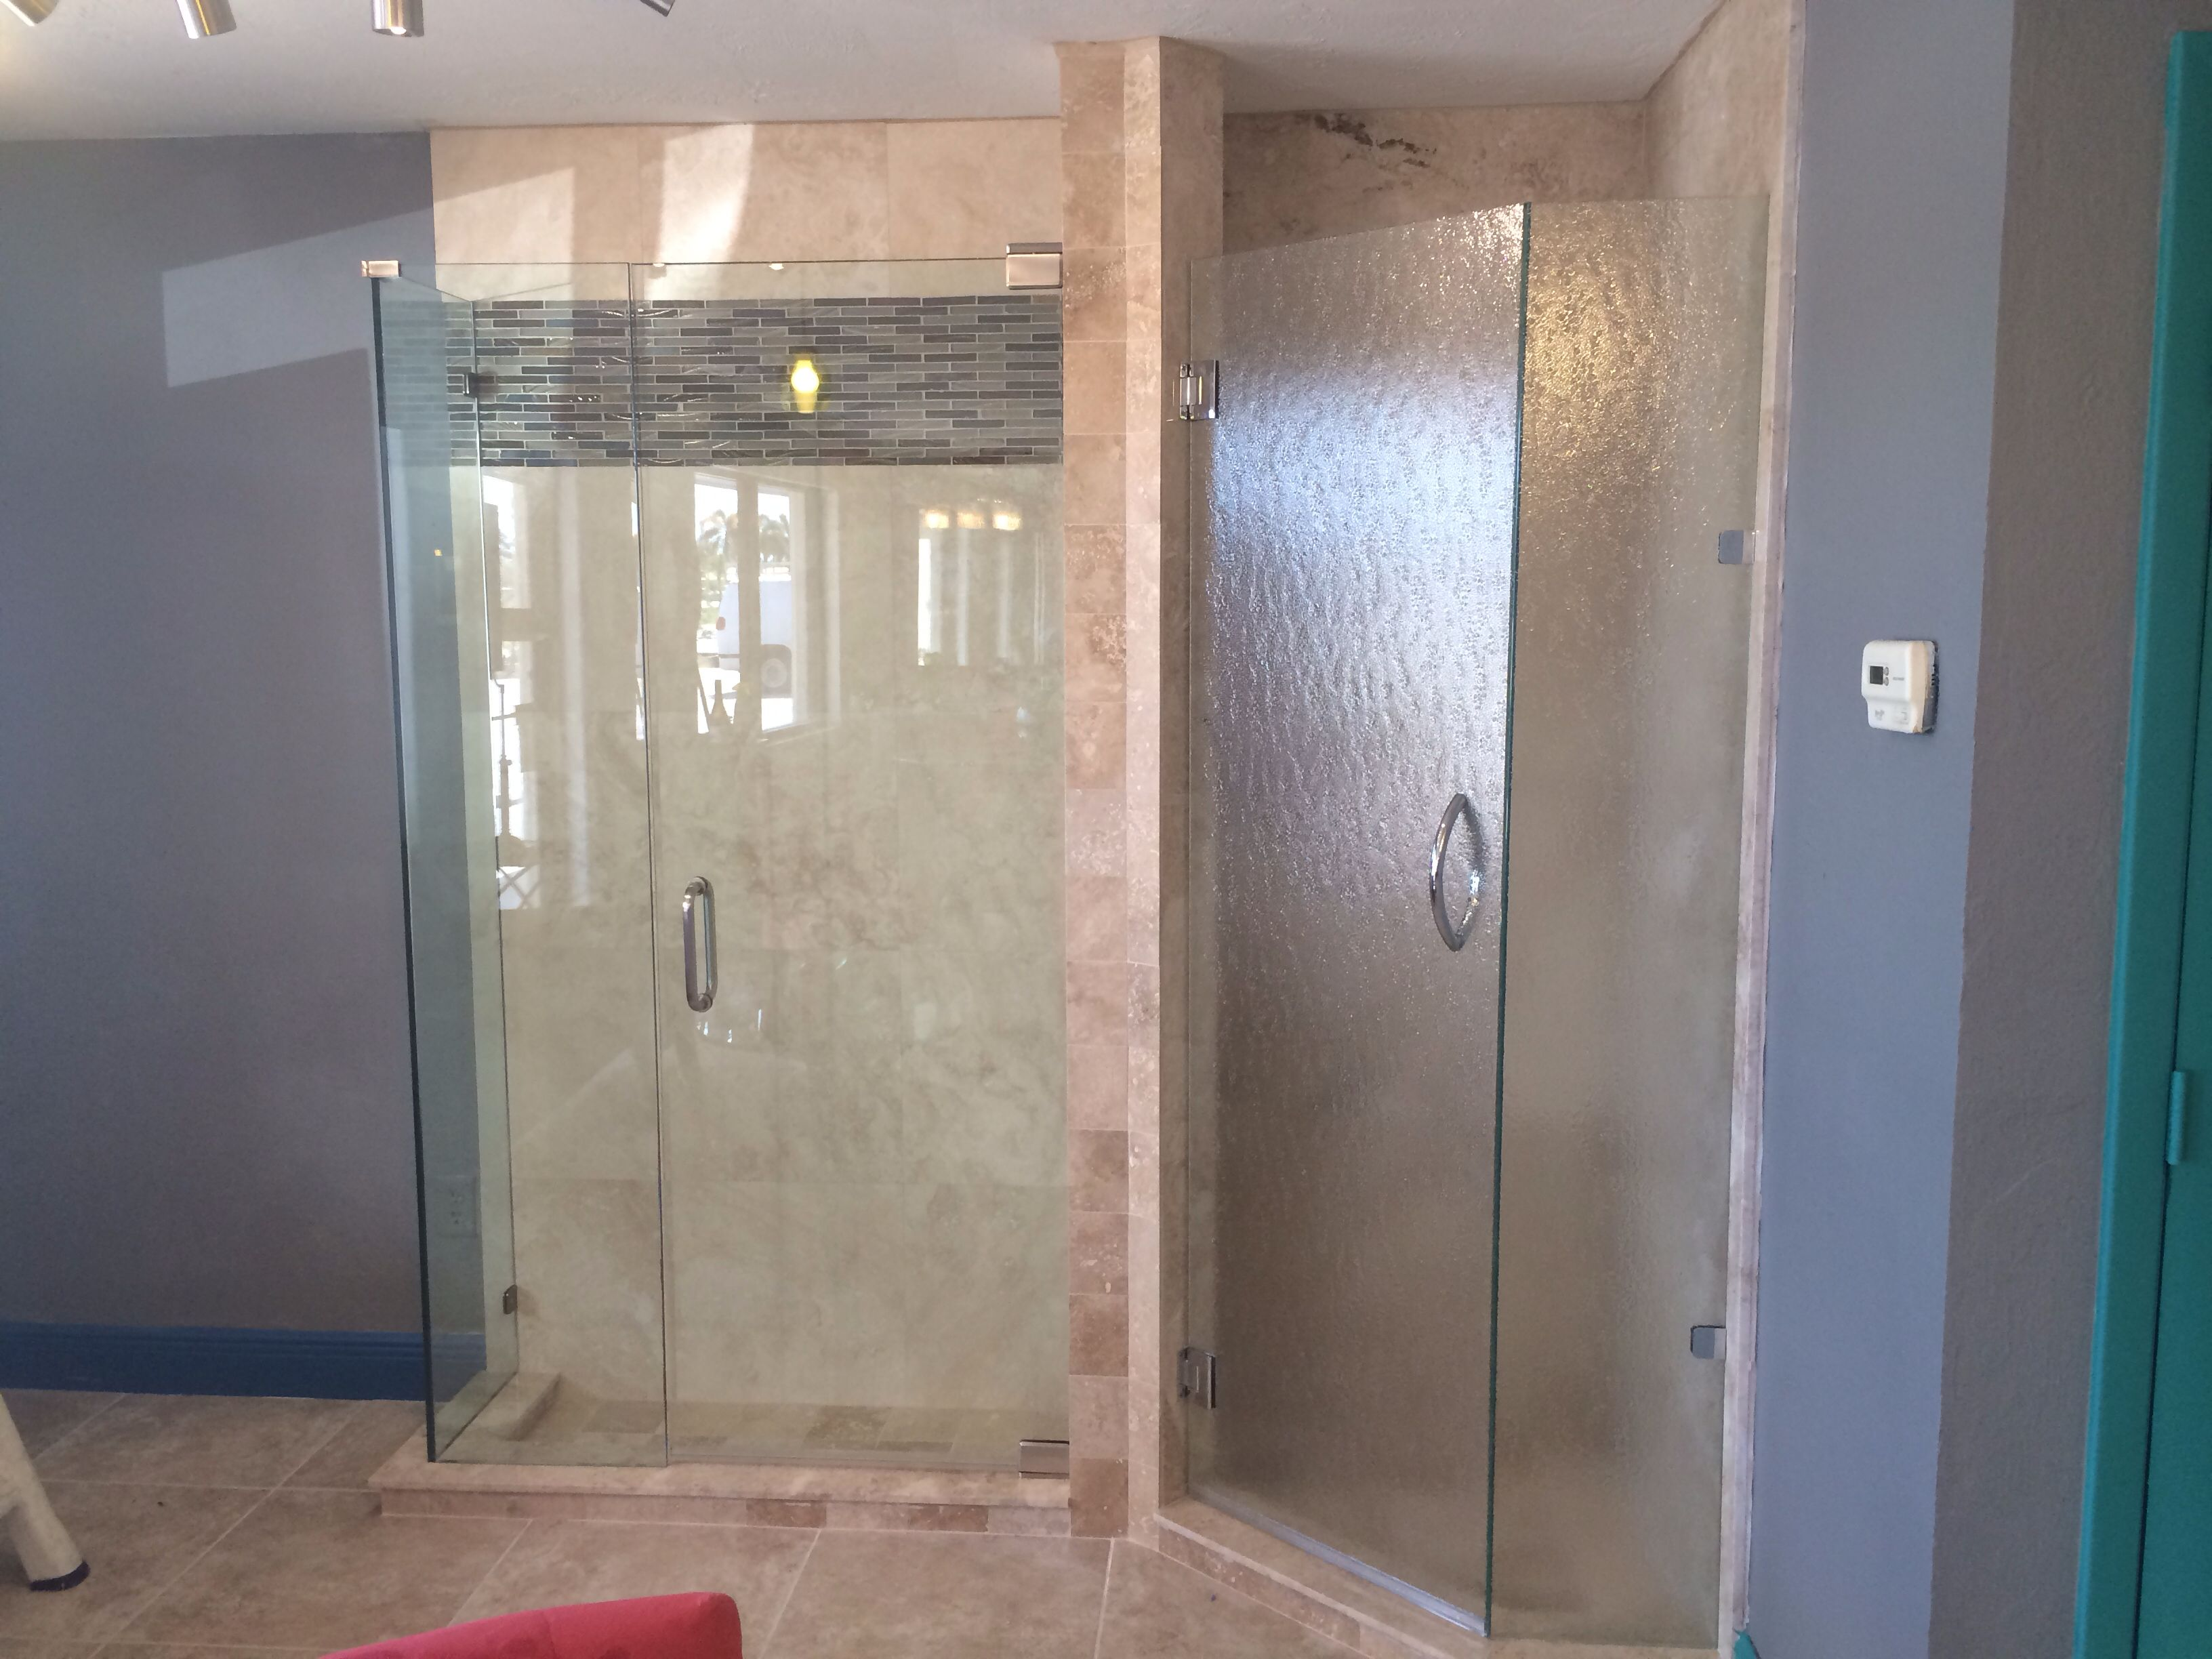 12 Thick Clear Glass Shower Enclosure And 38 Bubbles Glass On